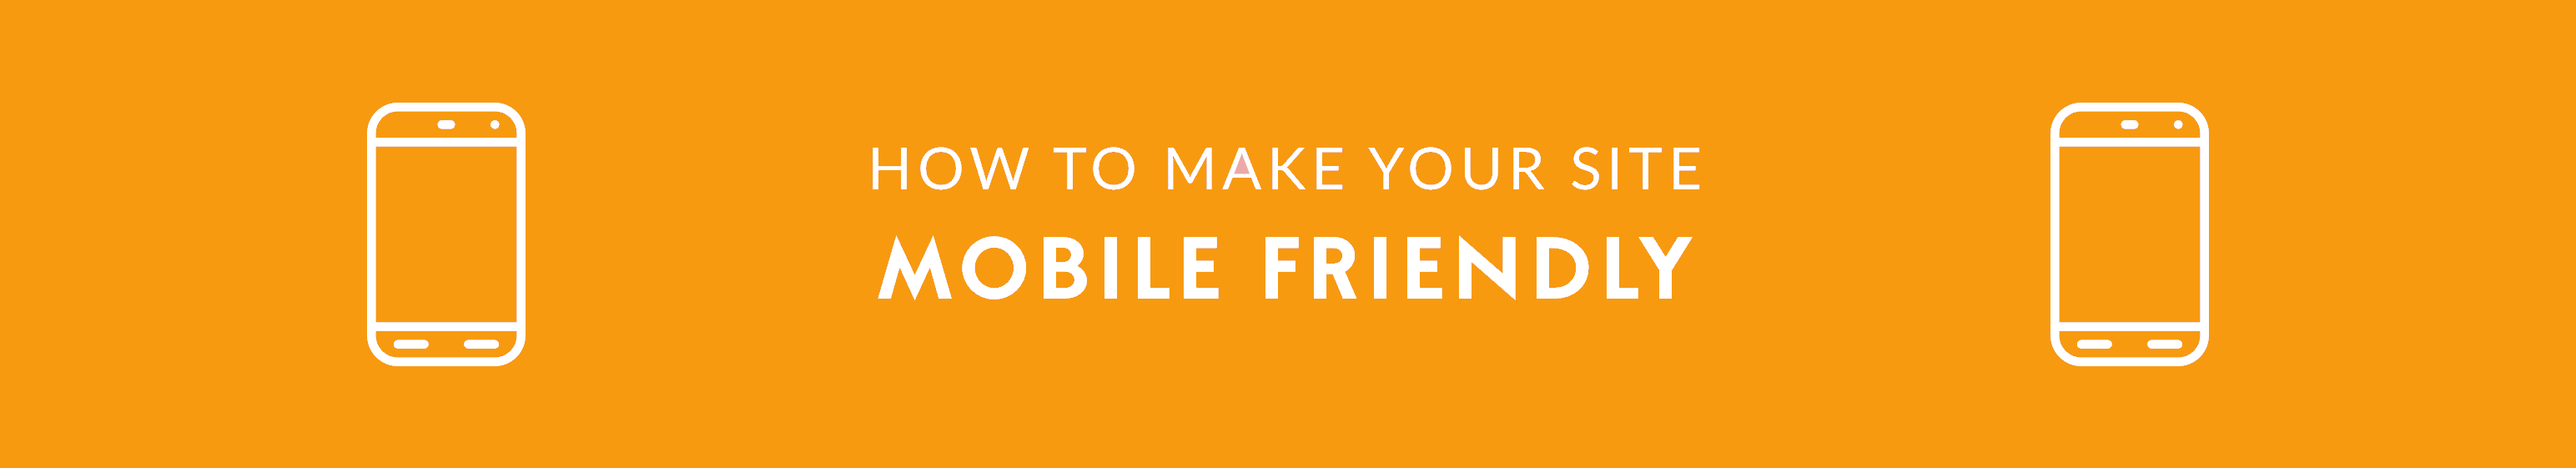 How to Make Your Site Mobile Friendly for SEO